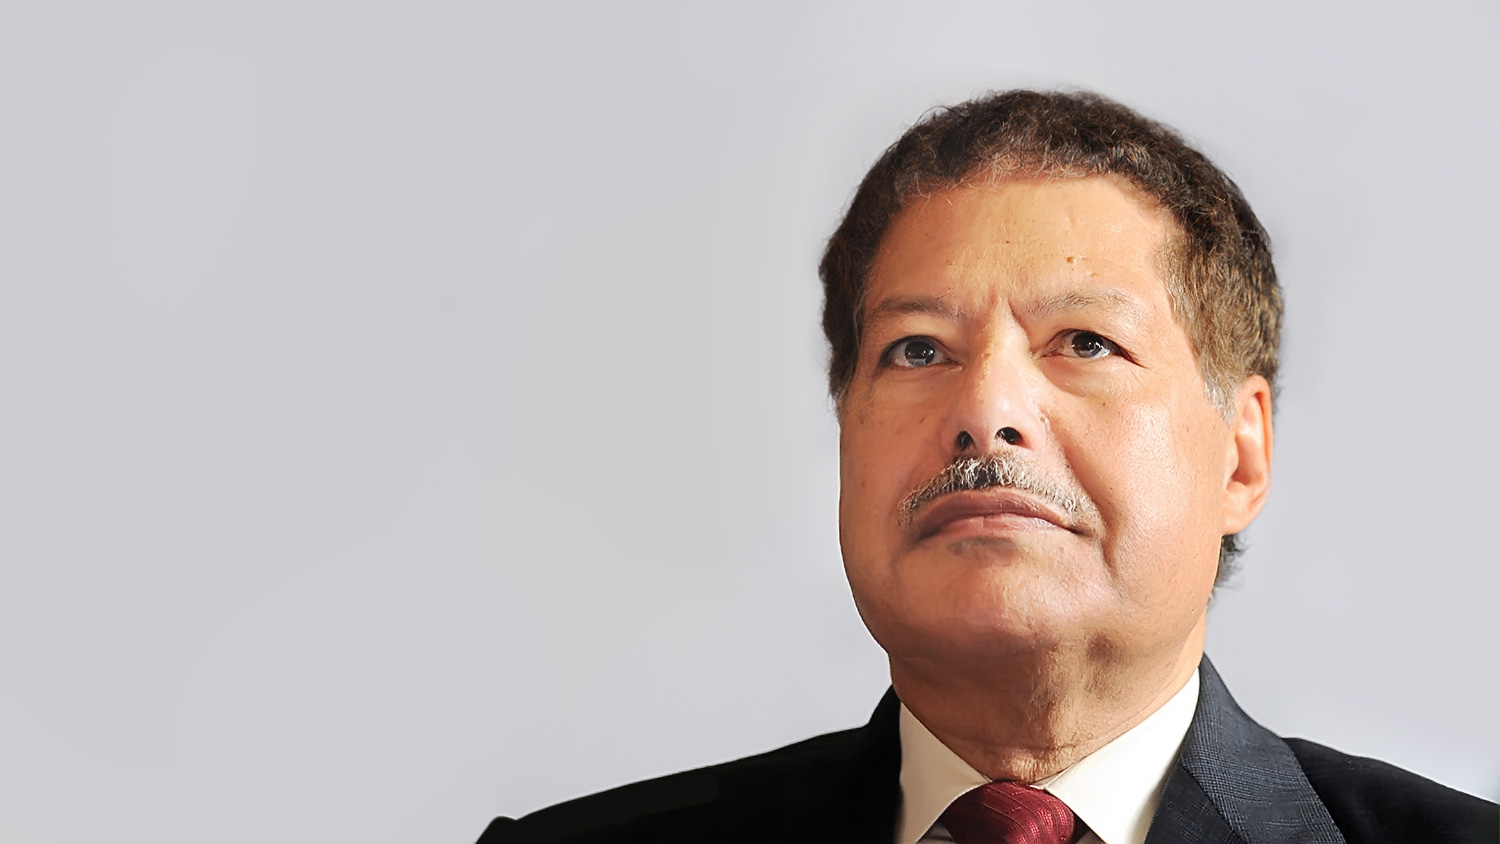 Ahmed Zewail - Nobel Laureate, Scientist